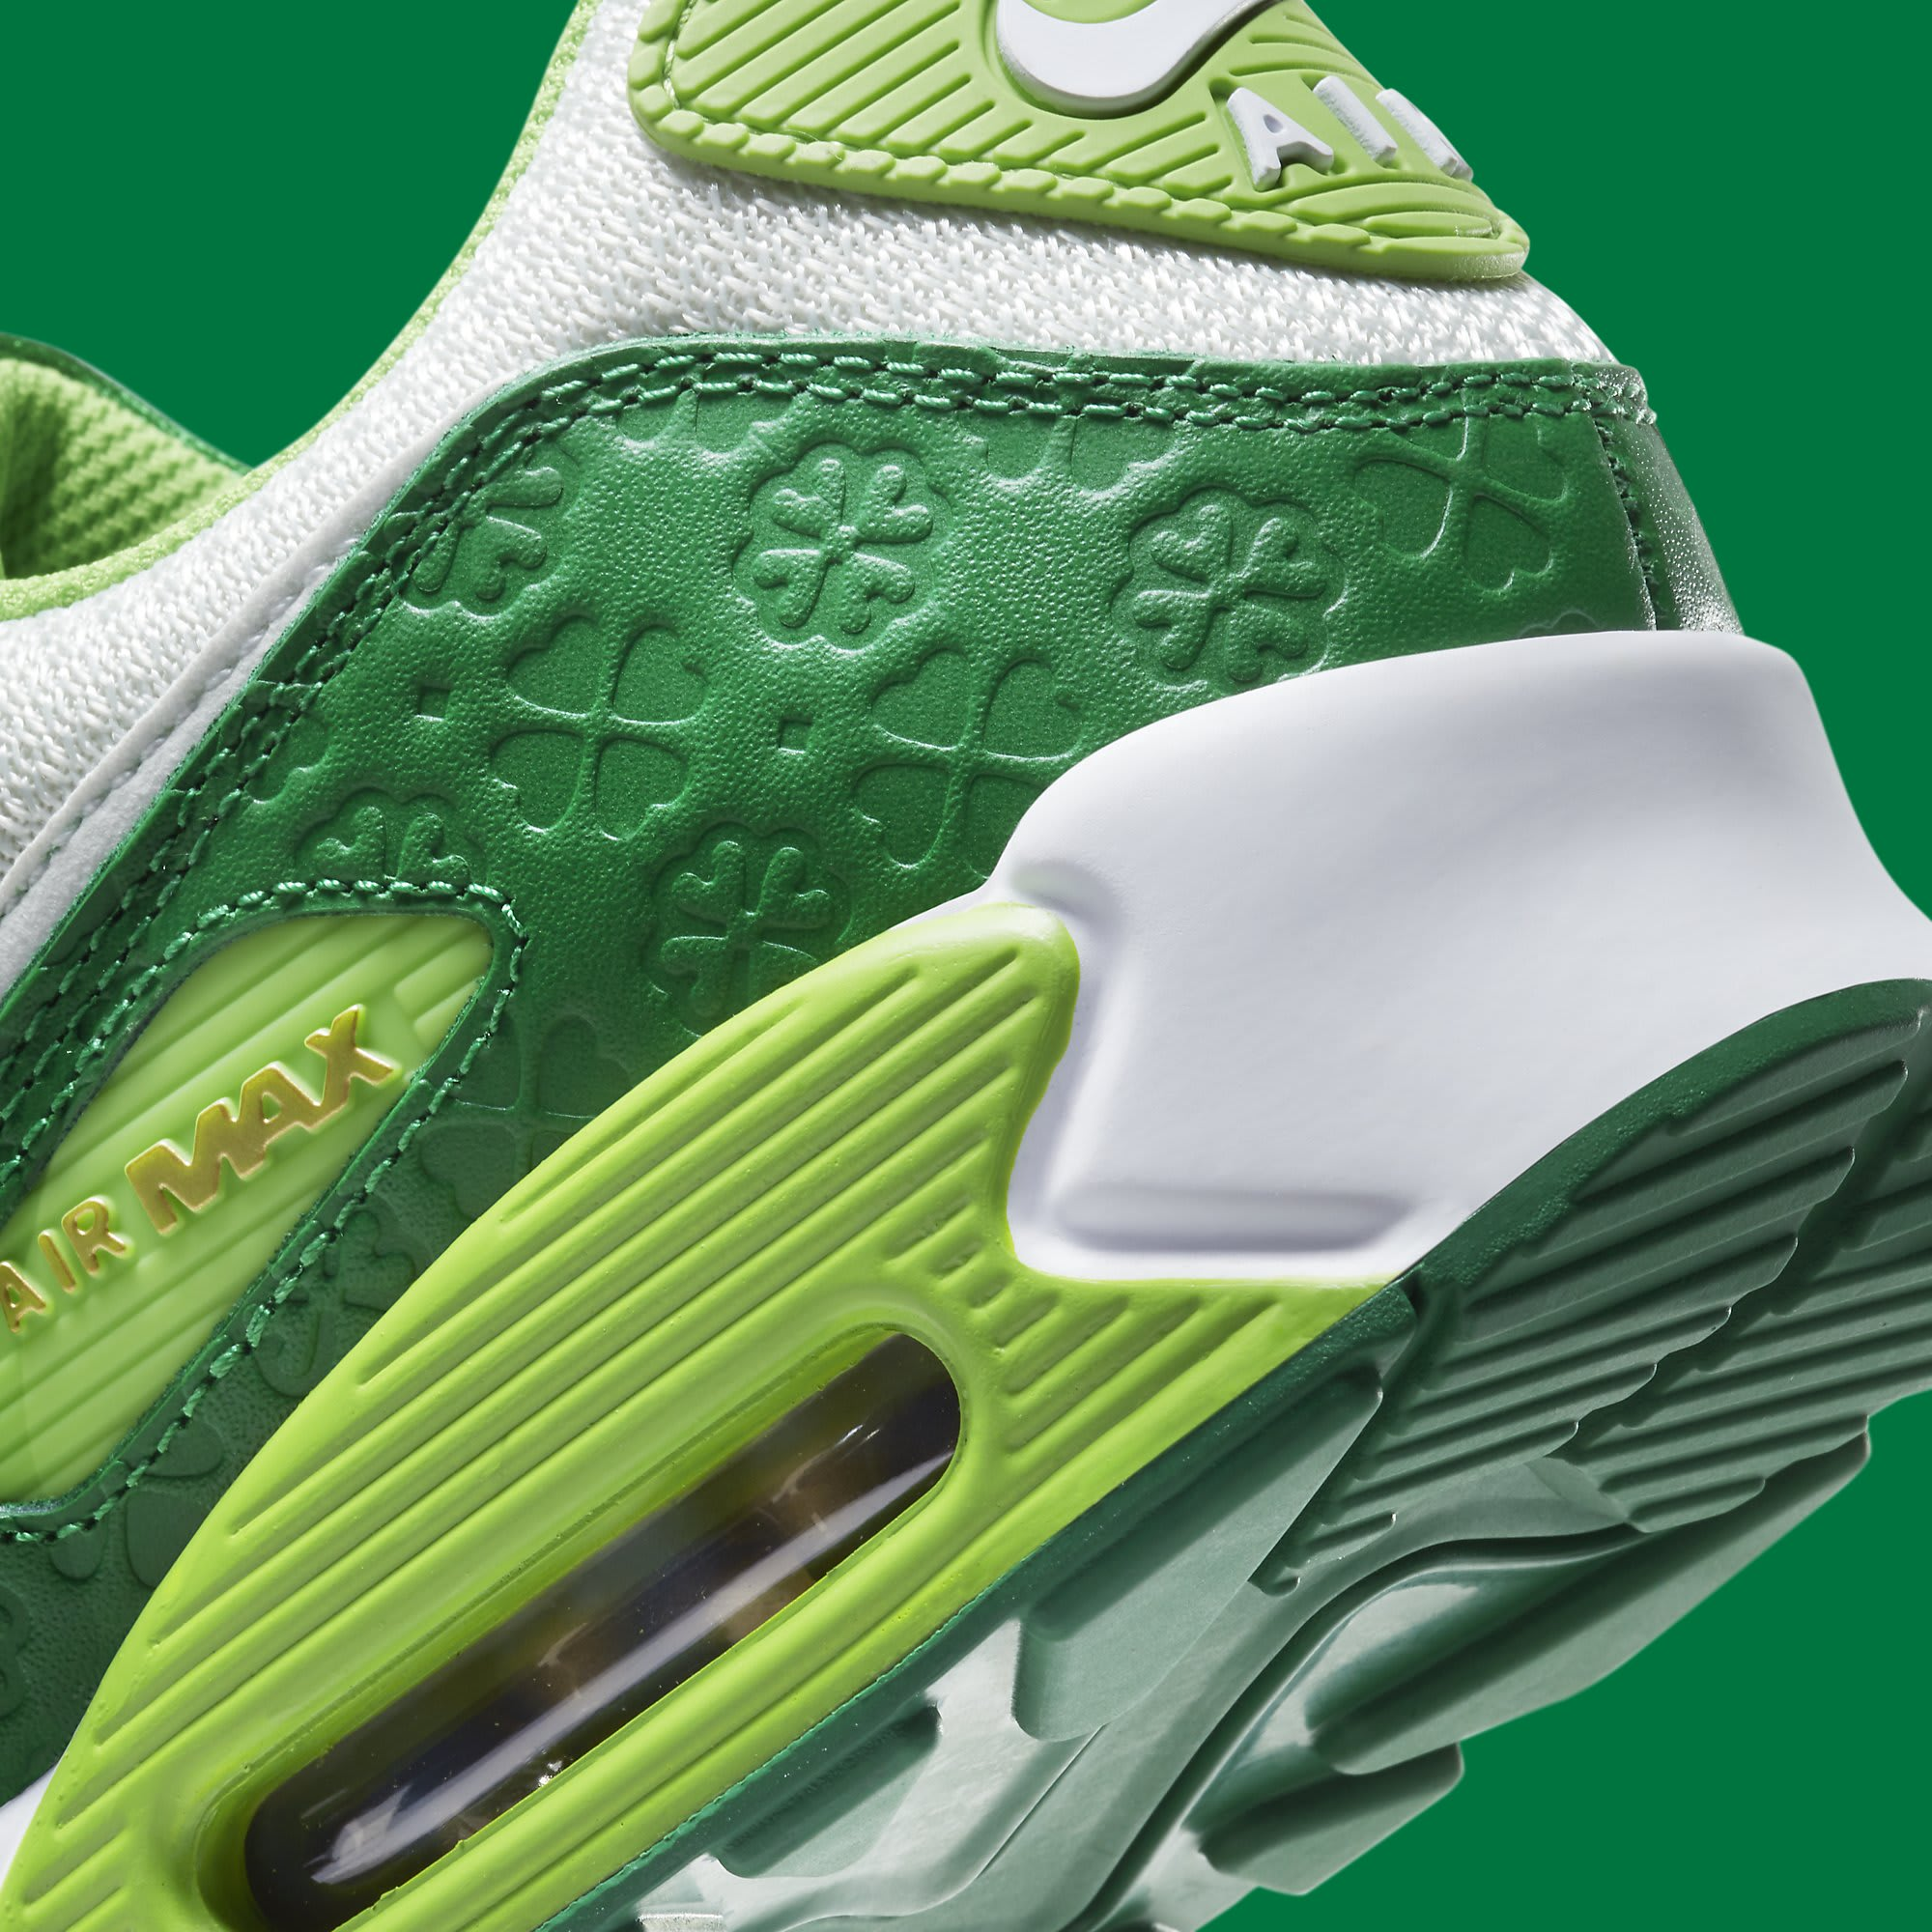 Nike Air Max 90 St. Patrick's Day Release Date DD8555-300 Heel Detail